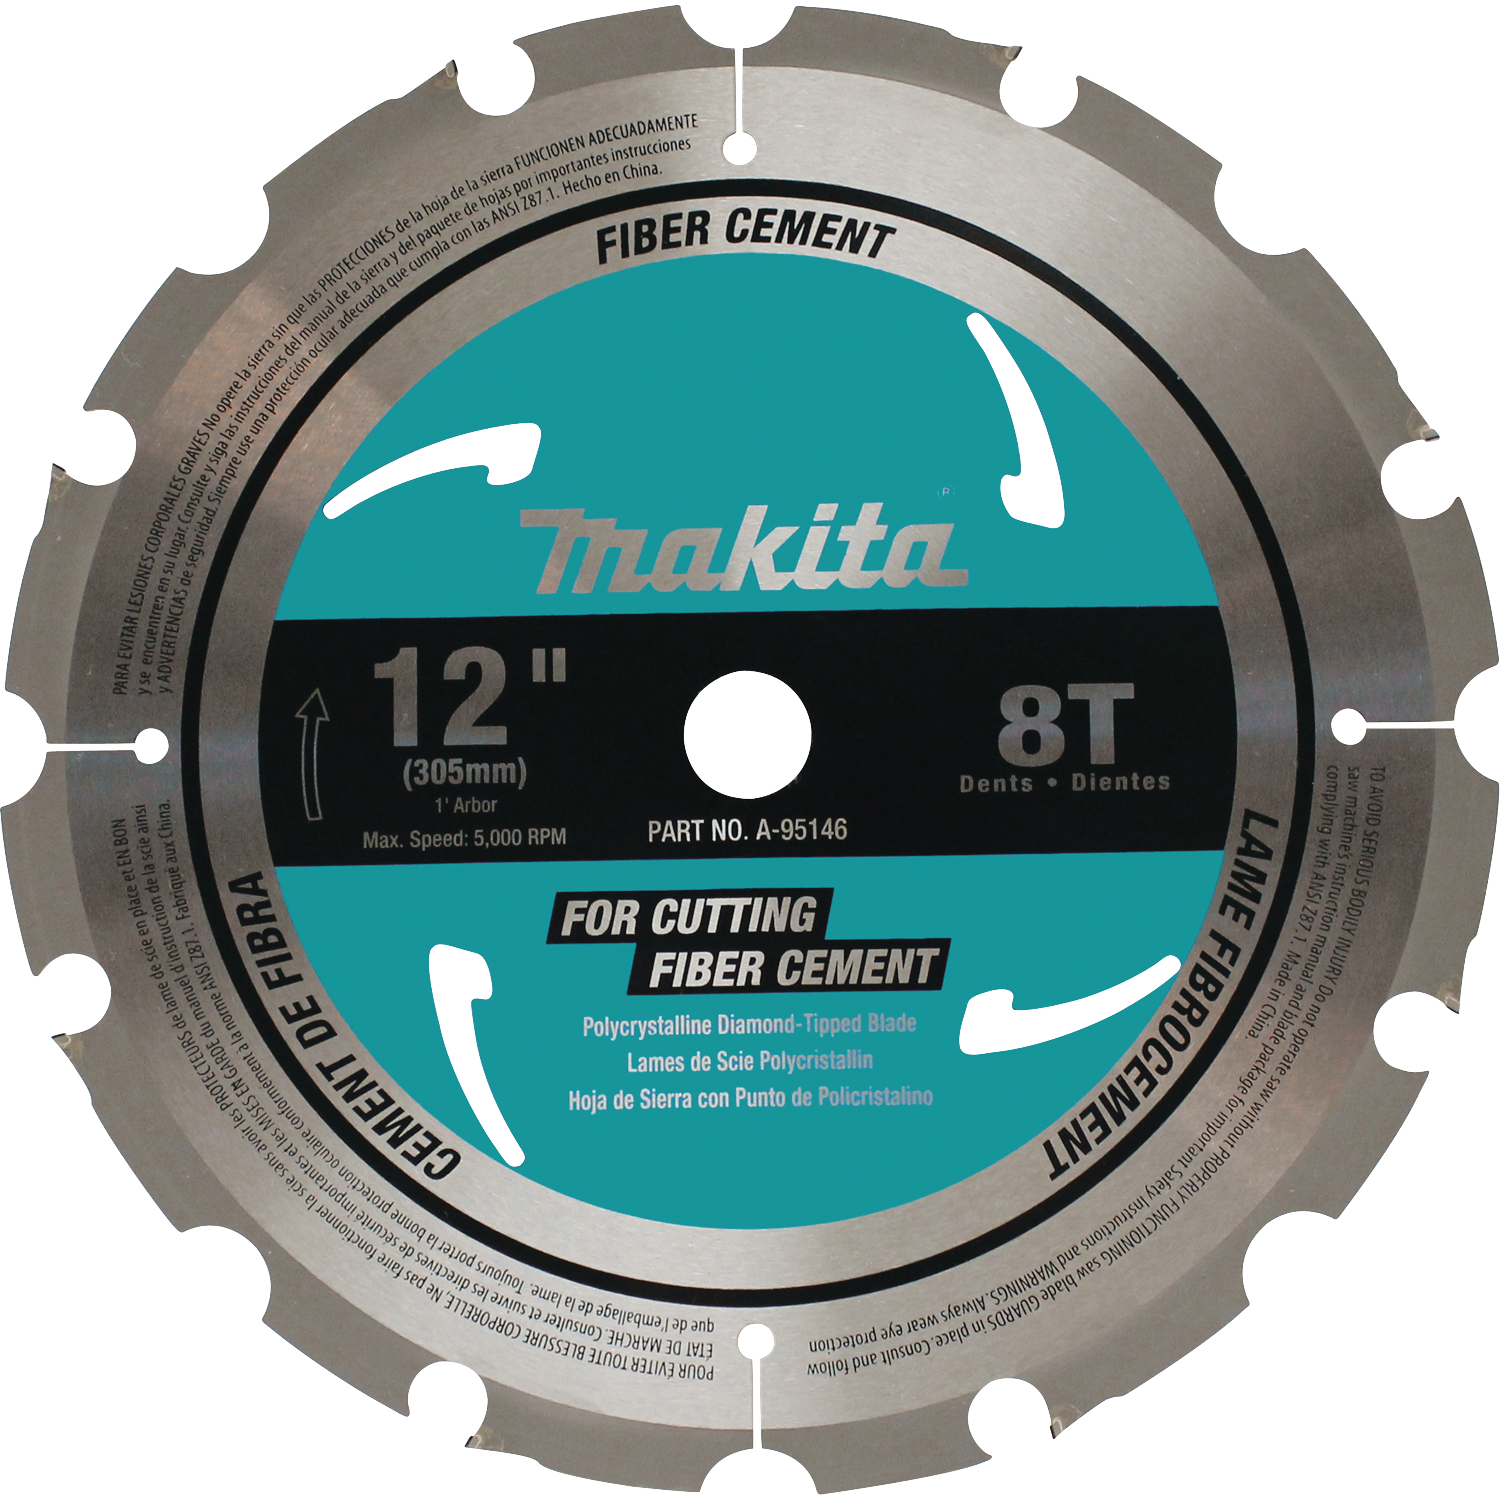 Makita usa product details a 95146 miter saw blade fiber cement a 95146 greentooth Image collections